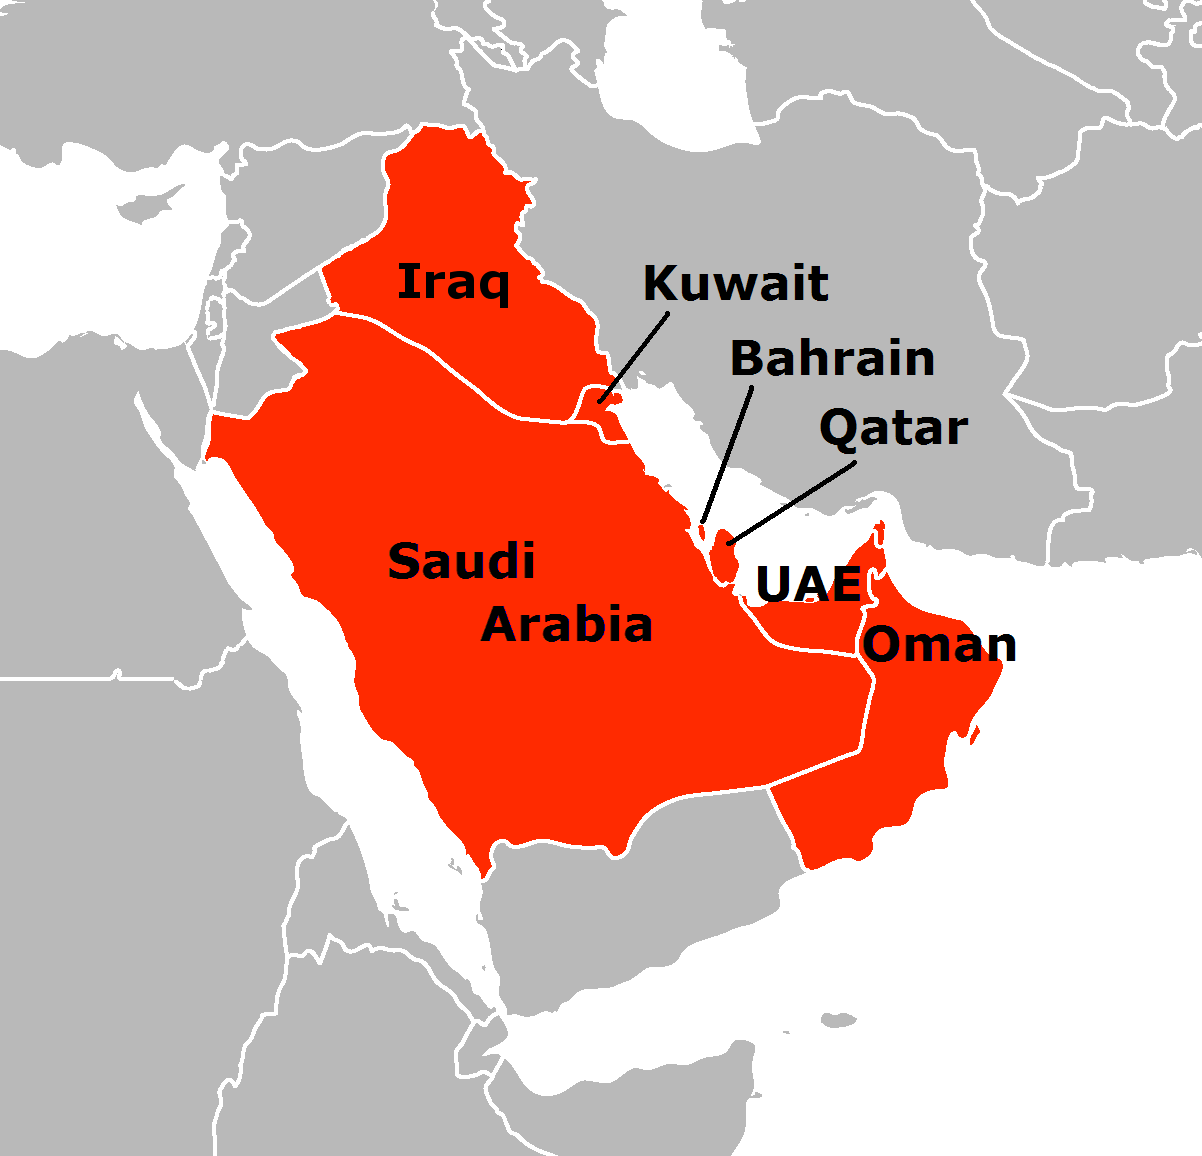 Arab states of the Persian Gulf - Wikipedia on world map in oman, world map in kuwait, world map in bahrain,